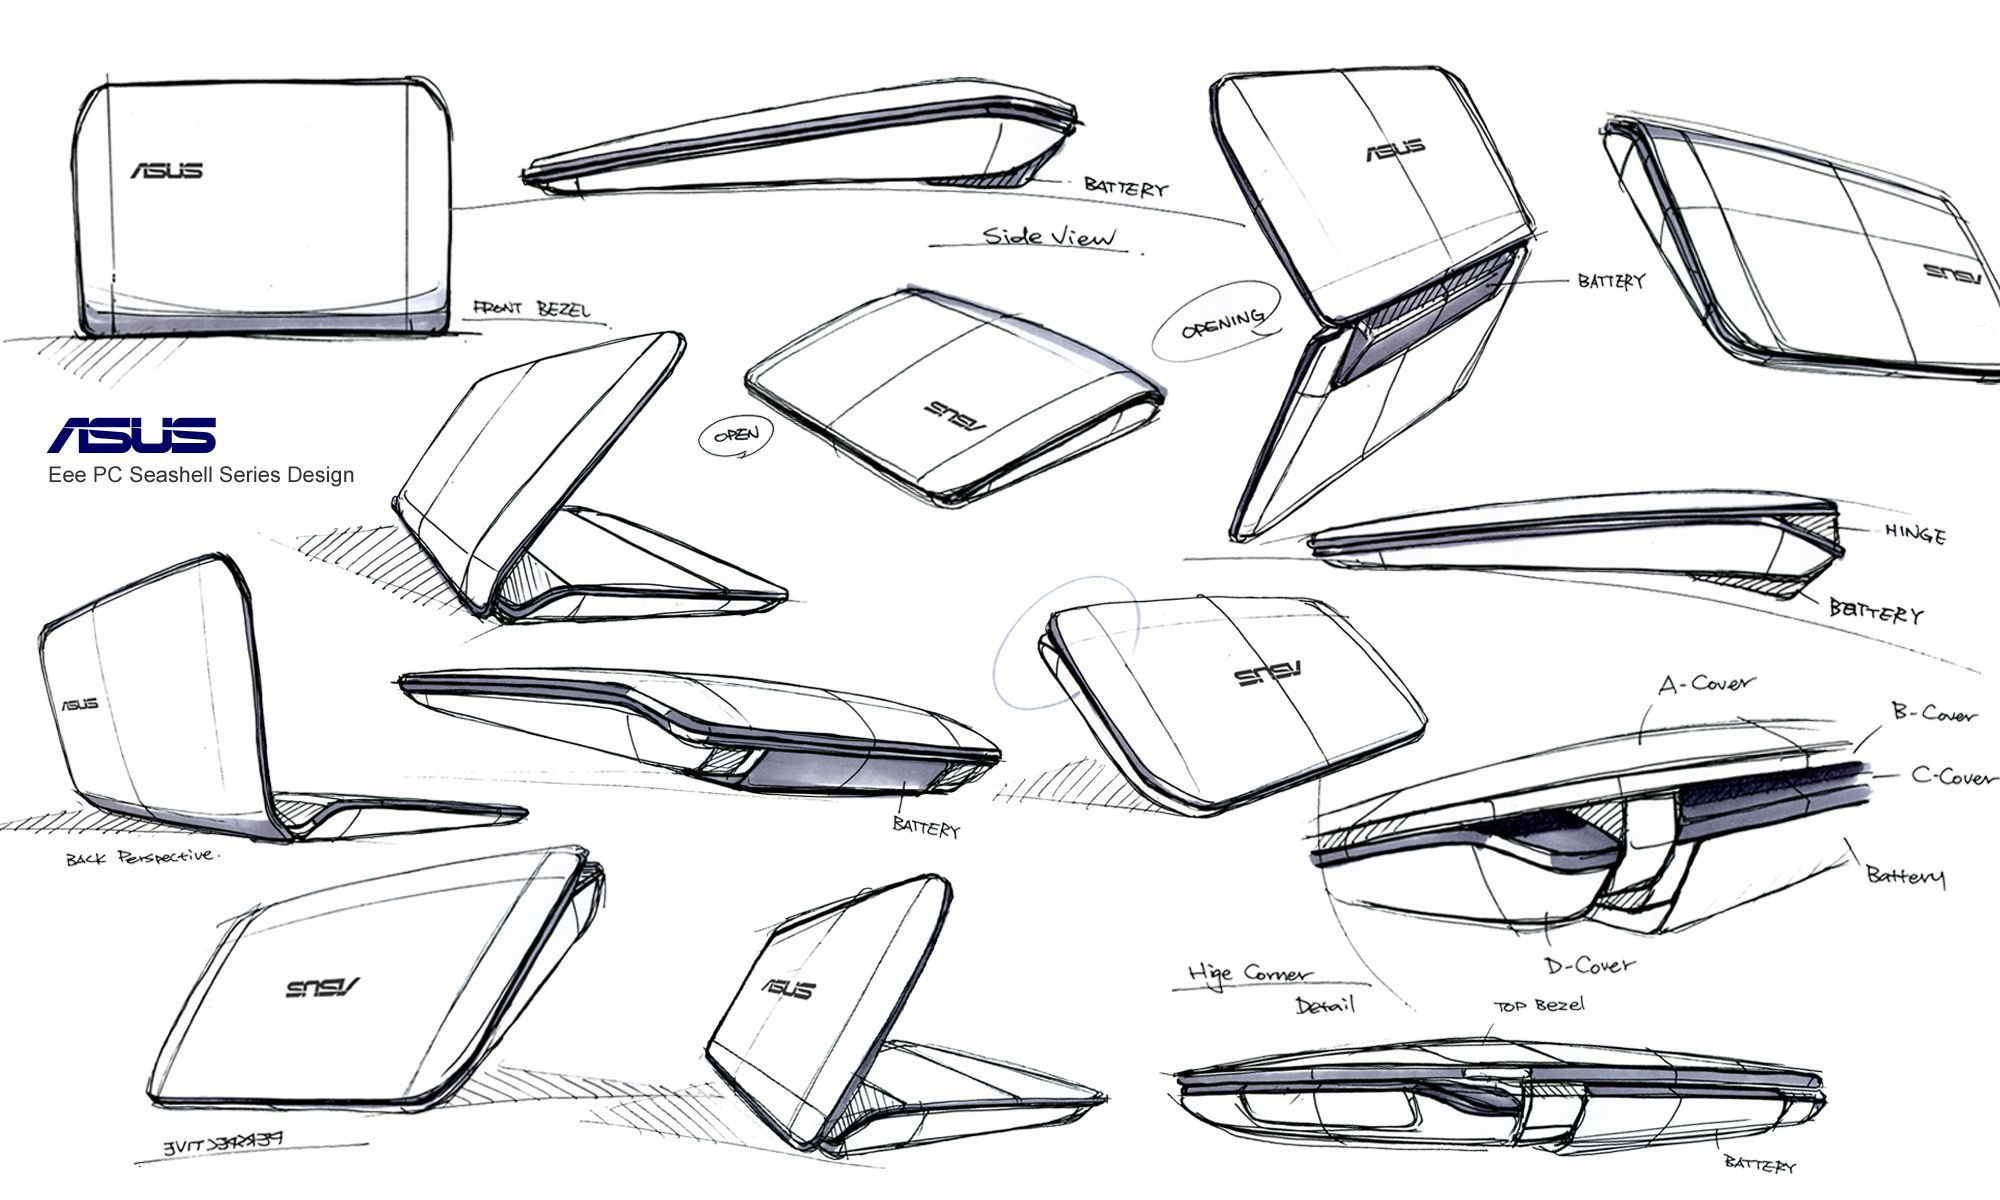 Industrial design sketches furniture - Design Sketch By Hank Chien Cheng Chen At Coroflot Com